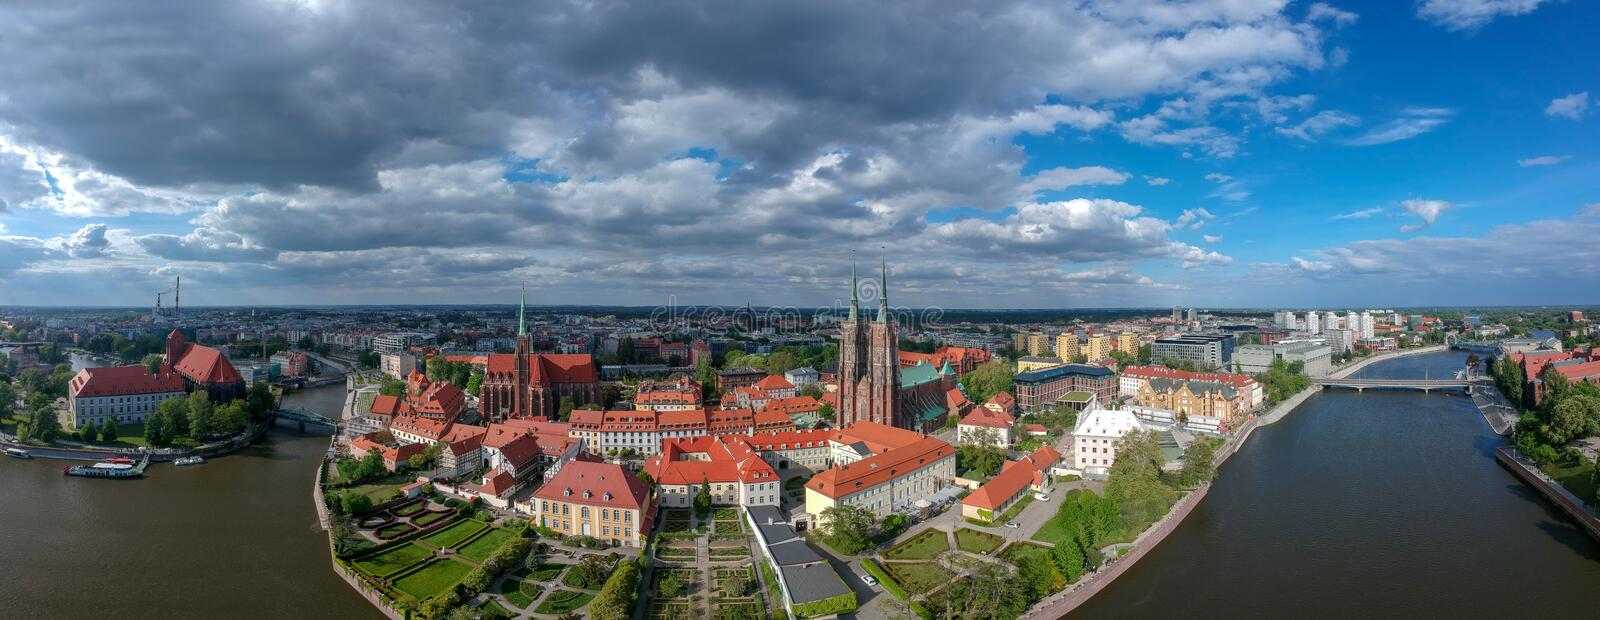 The aerial view of Wroclaw: Ostrow Tumski, Cathedral of St. John the Baptist and Collegiate Church of the Holy Cross and St. Barth stock image